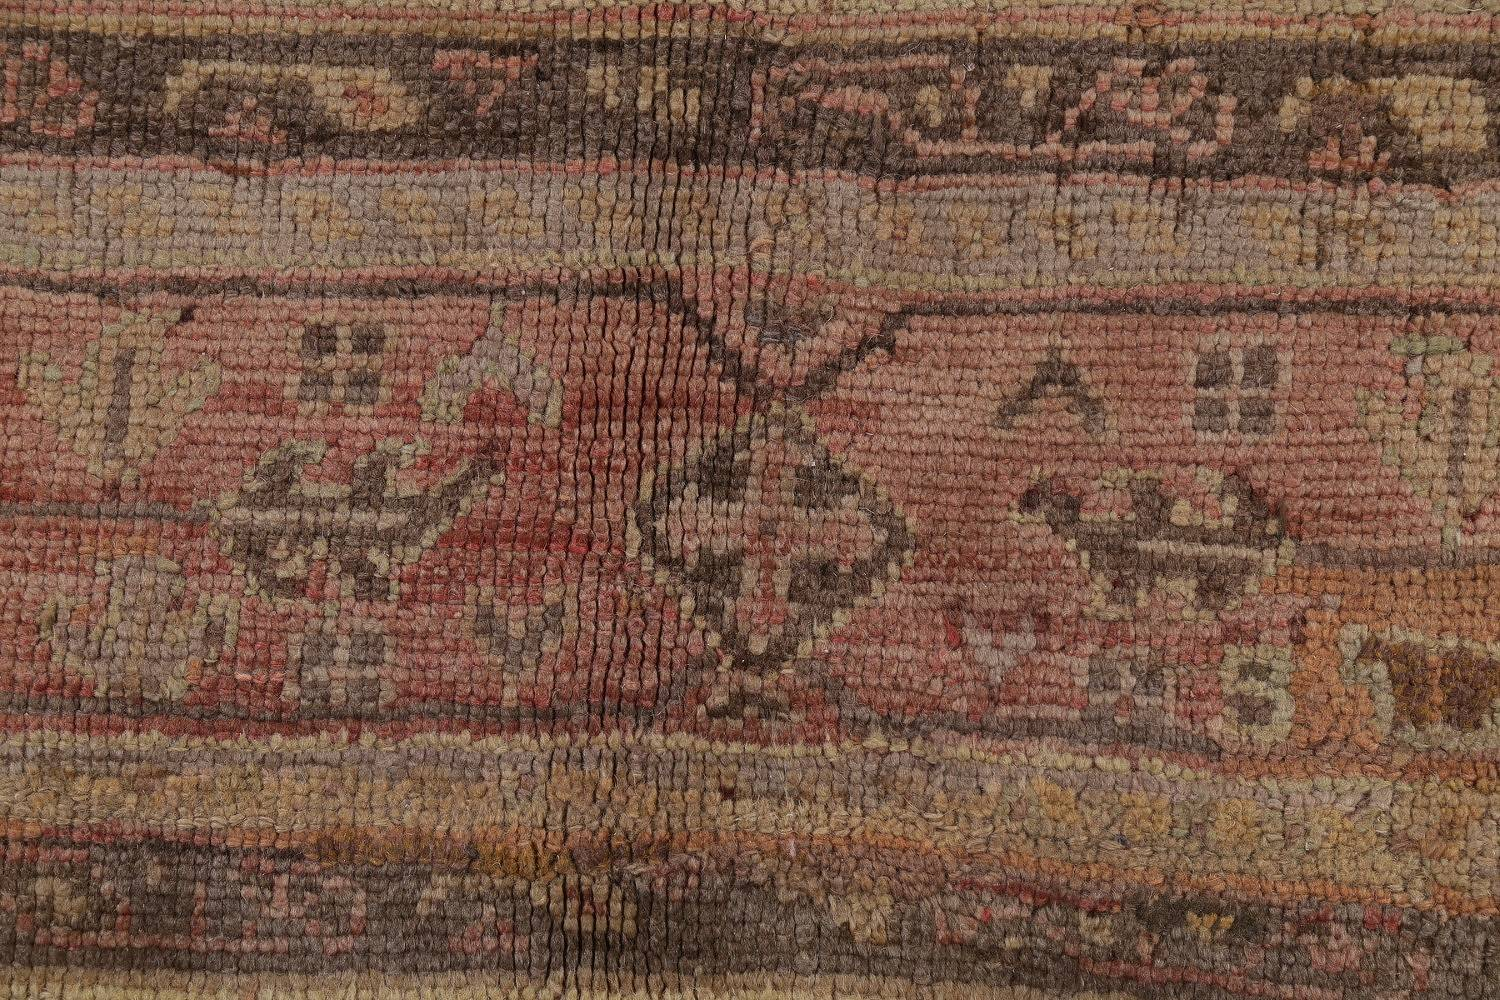 Pre-1900 Antique All-Over Geometric Muted Color Oushak Turkish Area Rug 10x13 image 7